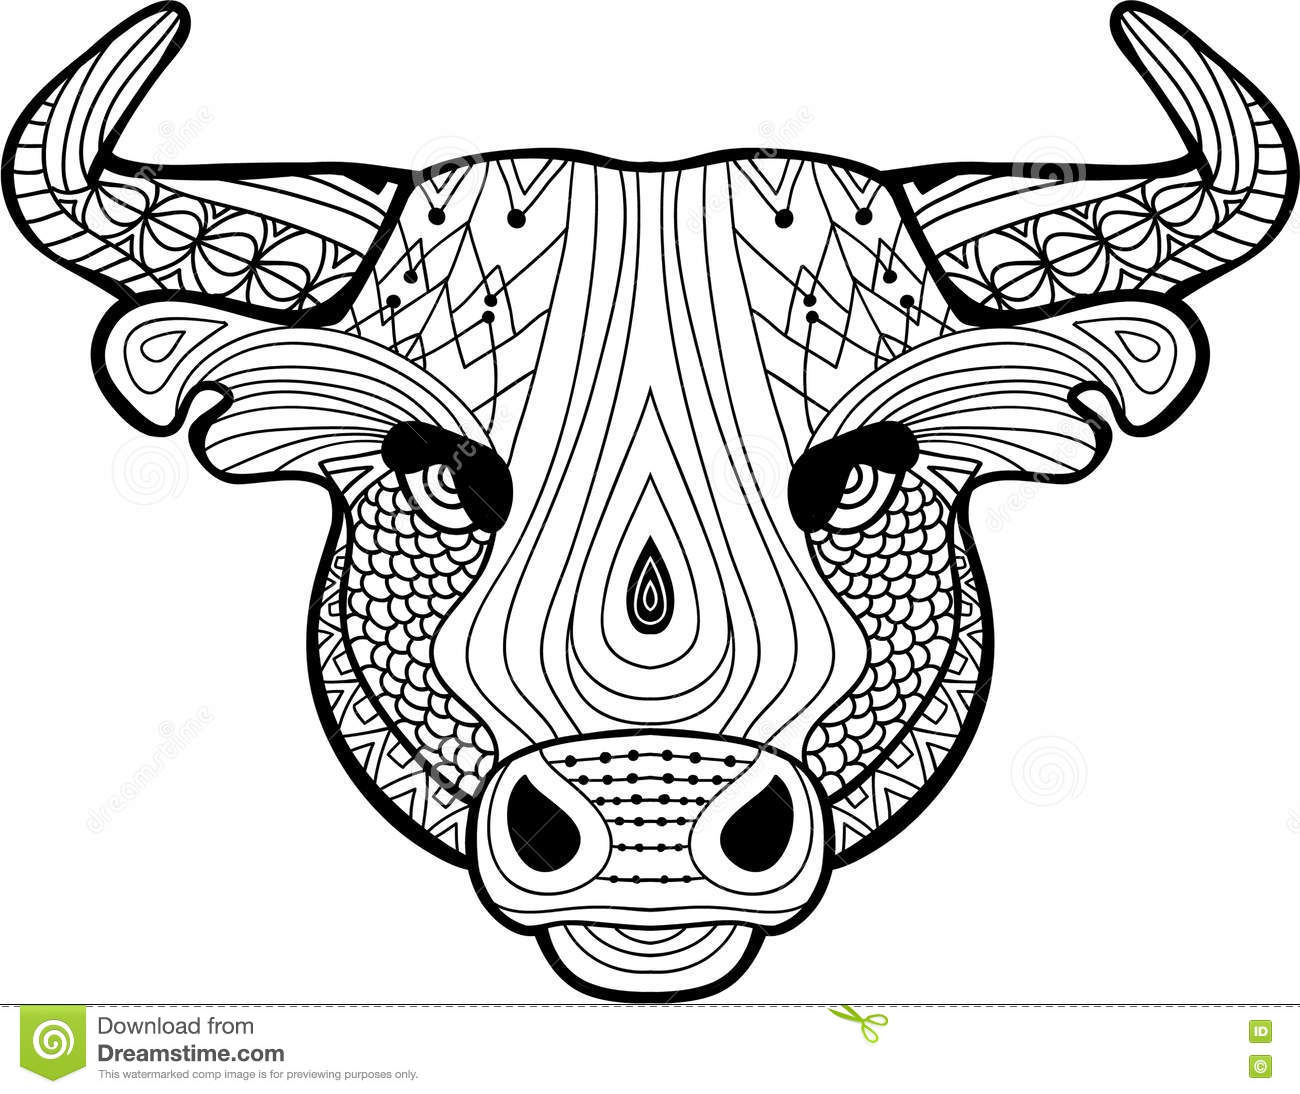 Coloring Book For Adults The Head Of A Buffalo Stock